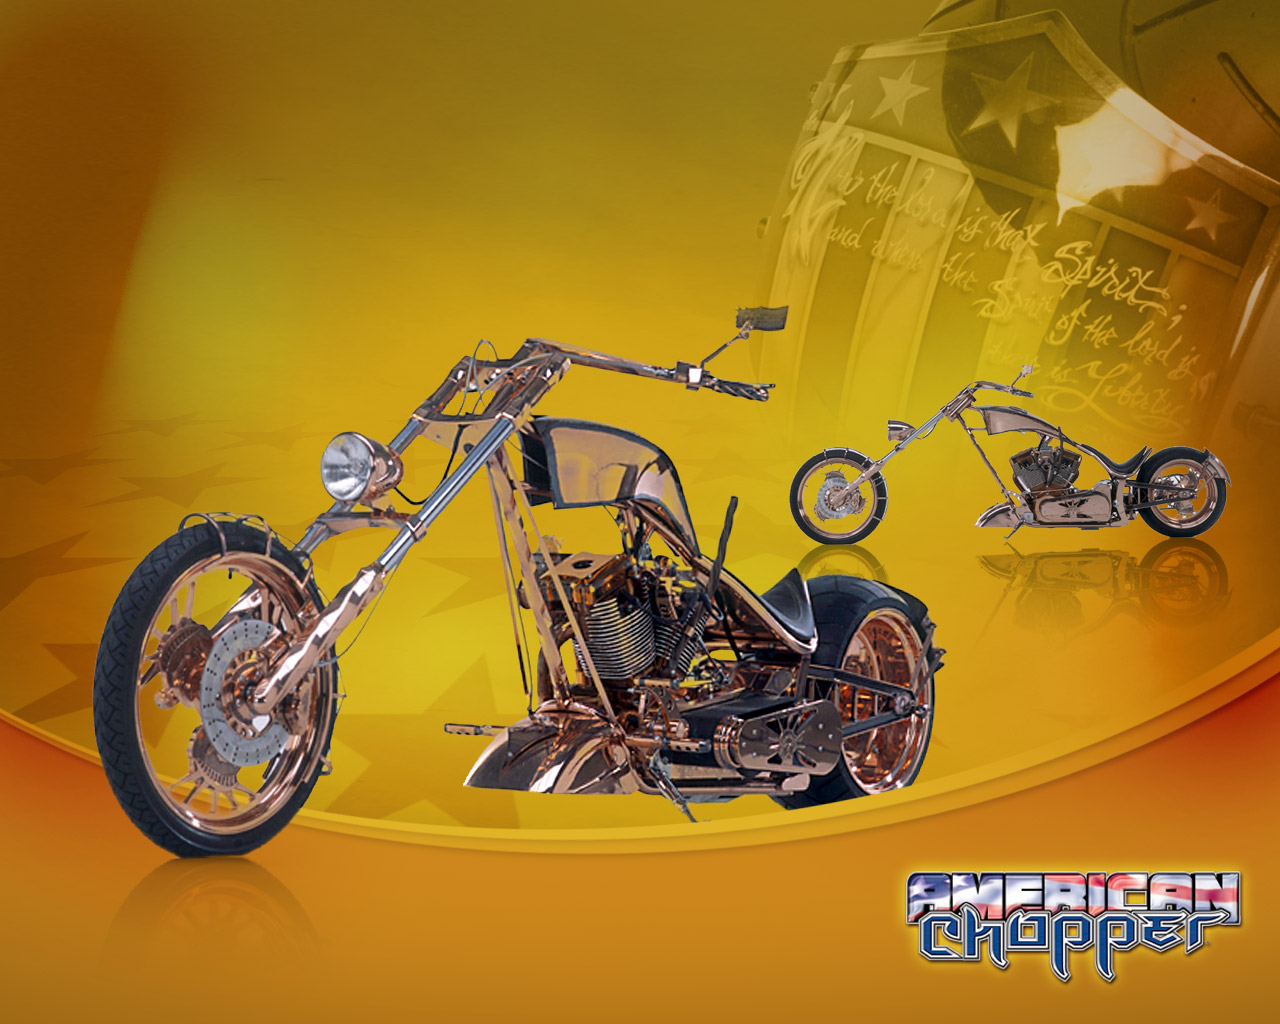 American chopper   Orange County Choppers Wallpaper 124432 1280x1024